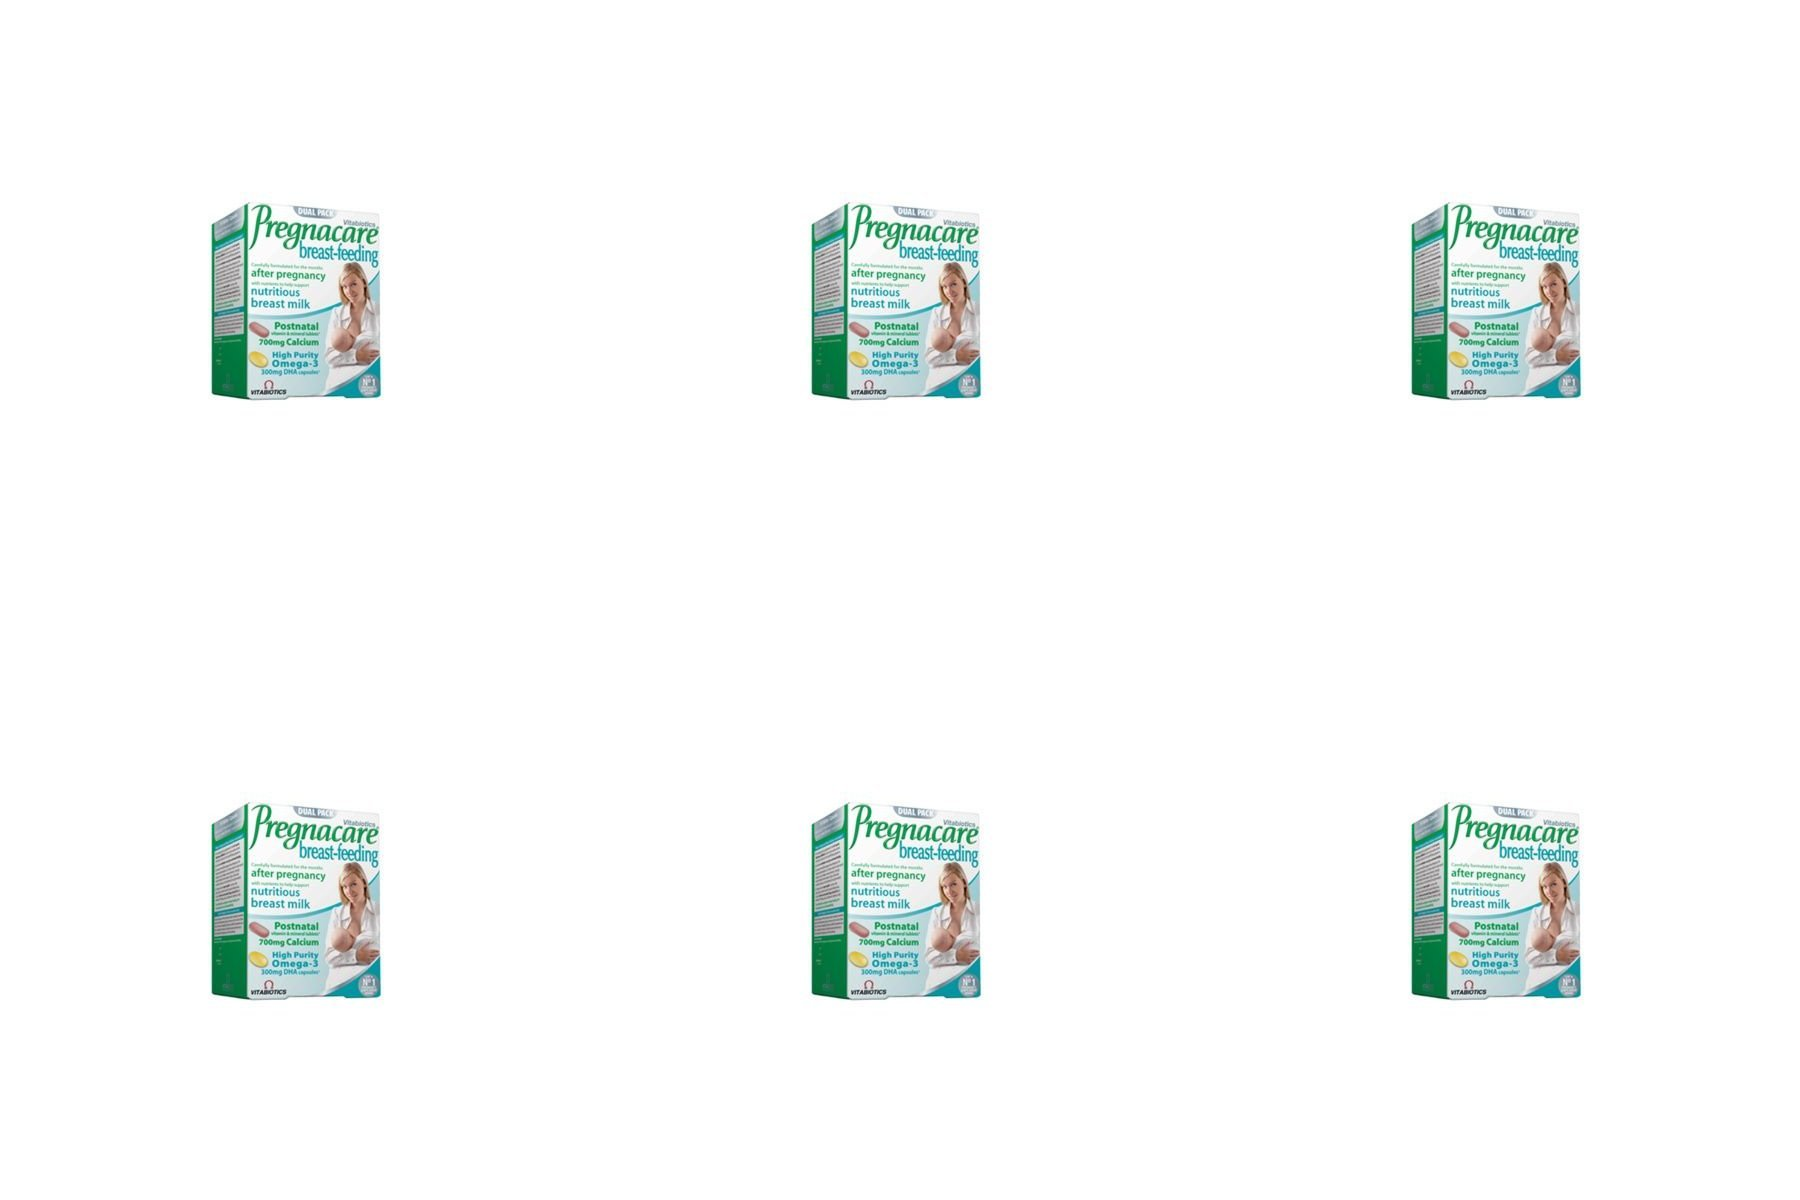 (6 PACK) - Vitabiotics Pregnacare Breastfeeding Tablets/Capsules | 84s | 6 PACK - SUPER SAVER - SAVE MONEY